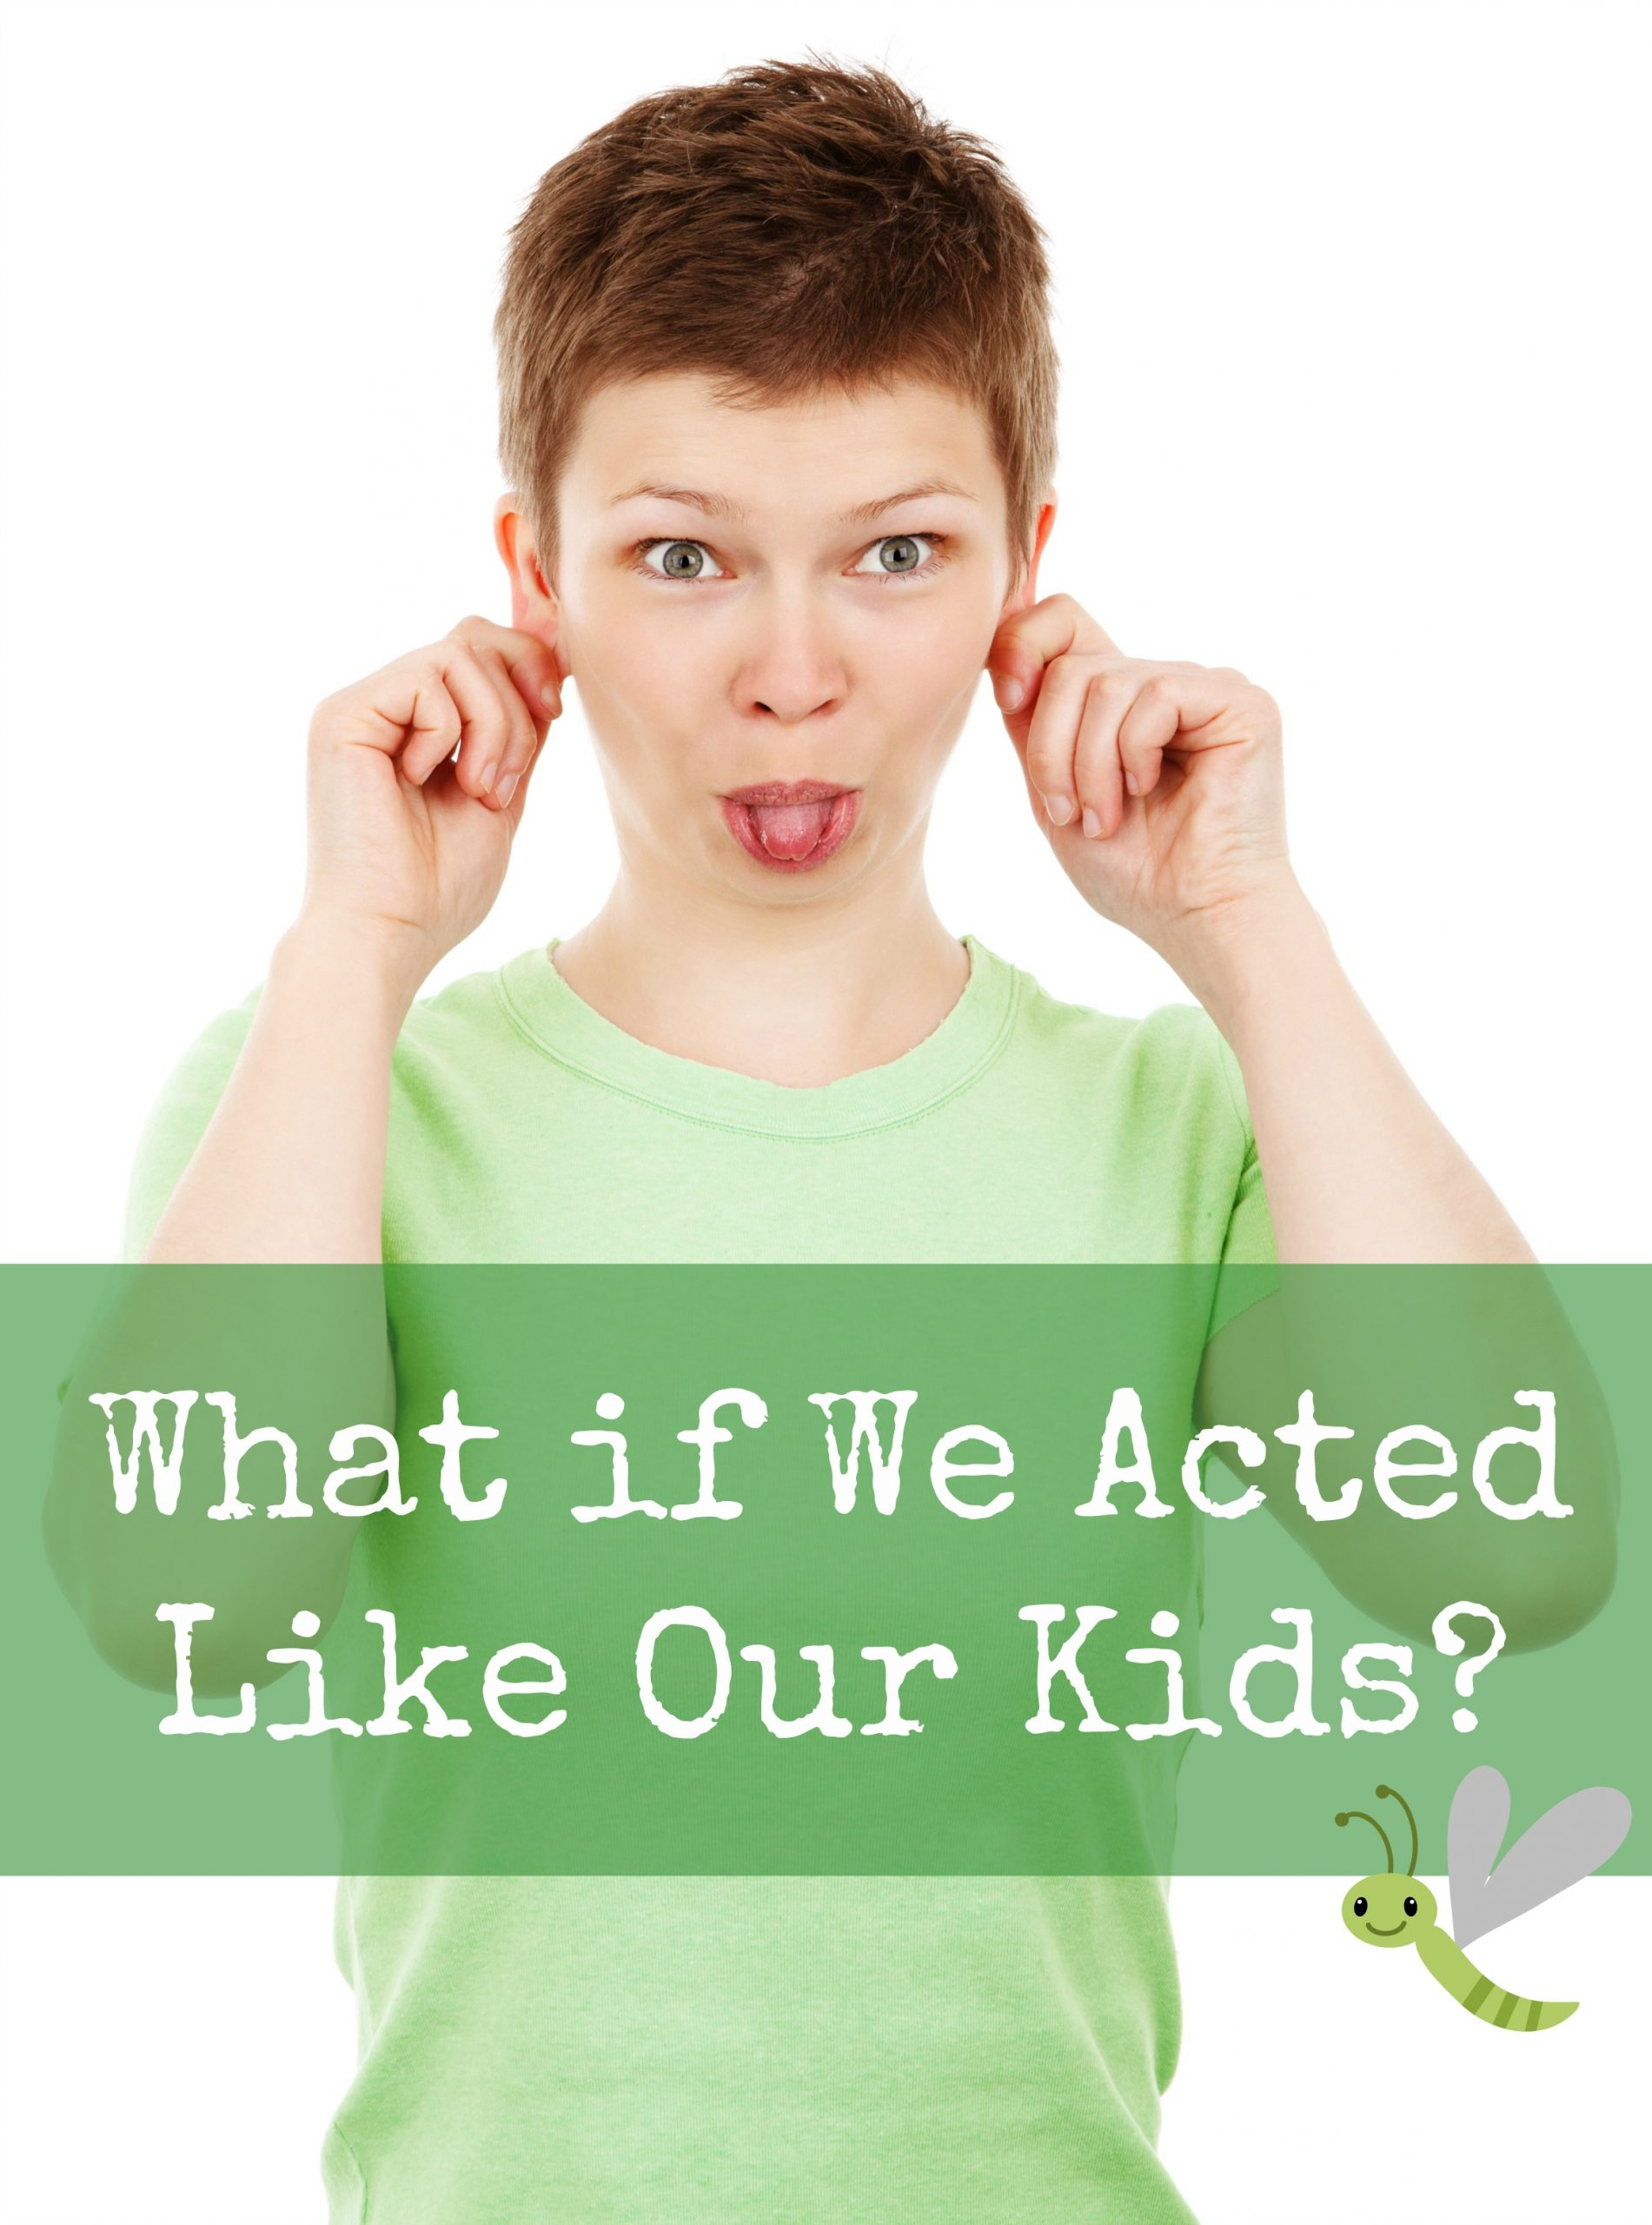 What if We Acted Like Our Kids?